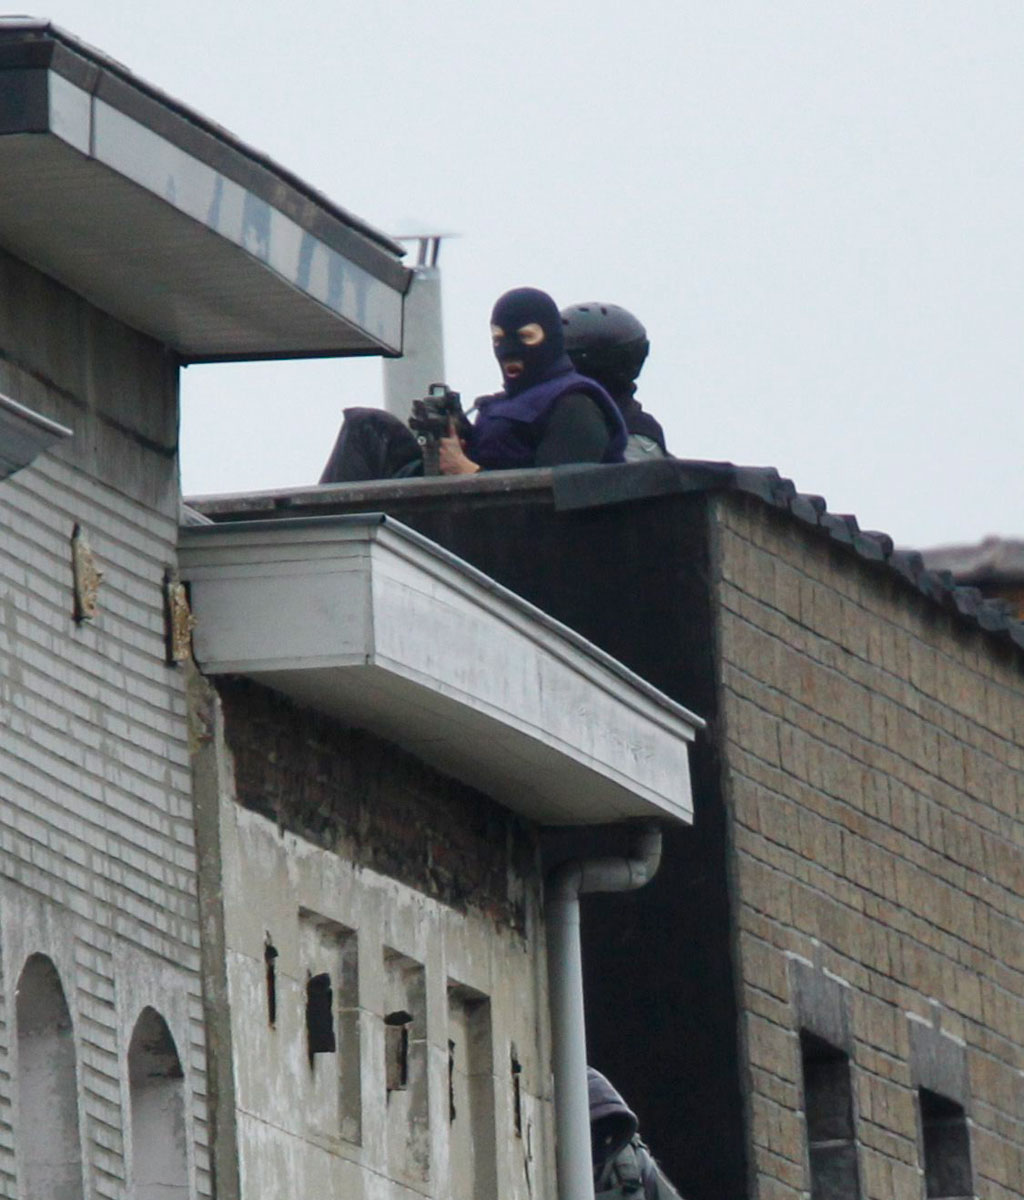 Snipers stand at rue Delaunoy during highly-targeted raids in the district of Molenbeek, Brussels. (AAP)